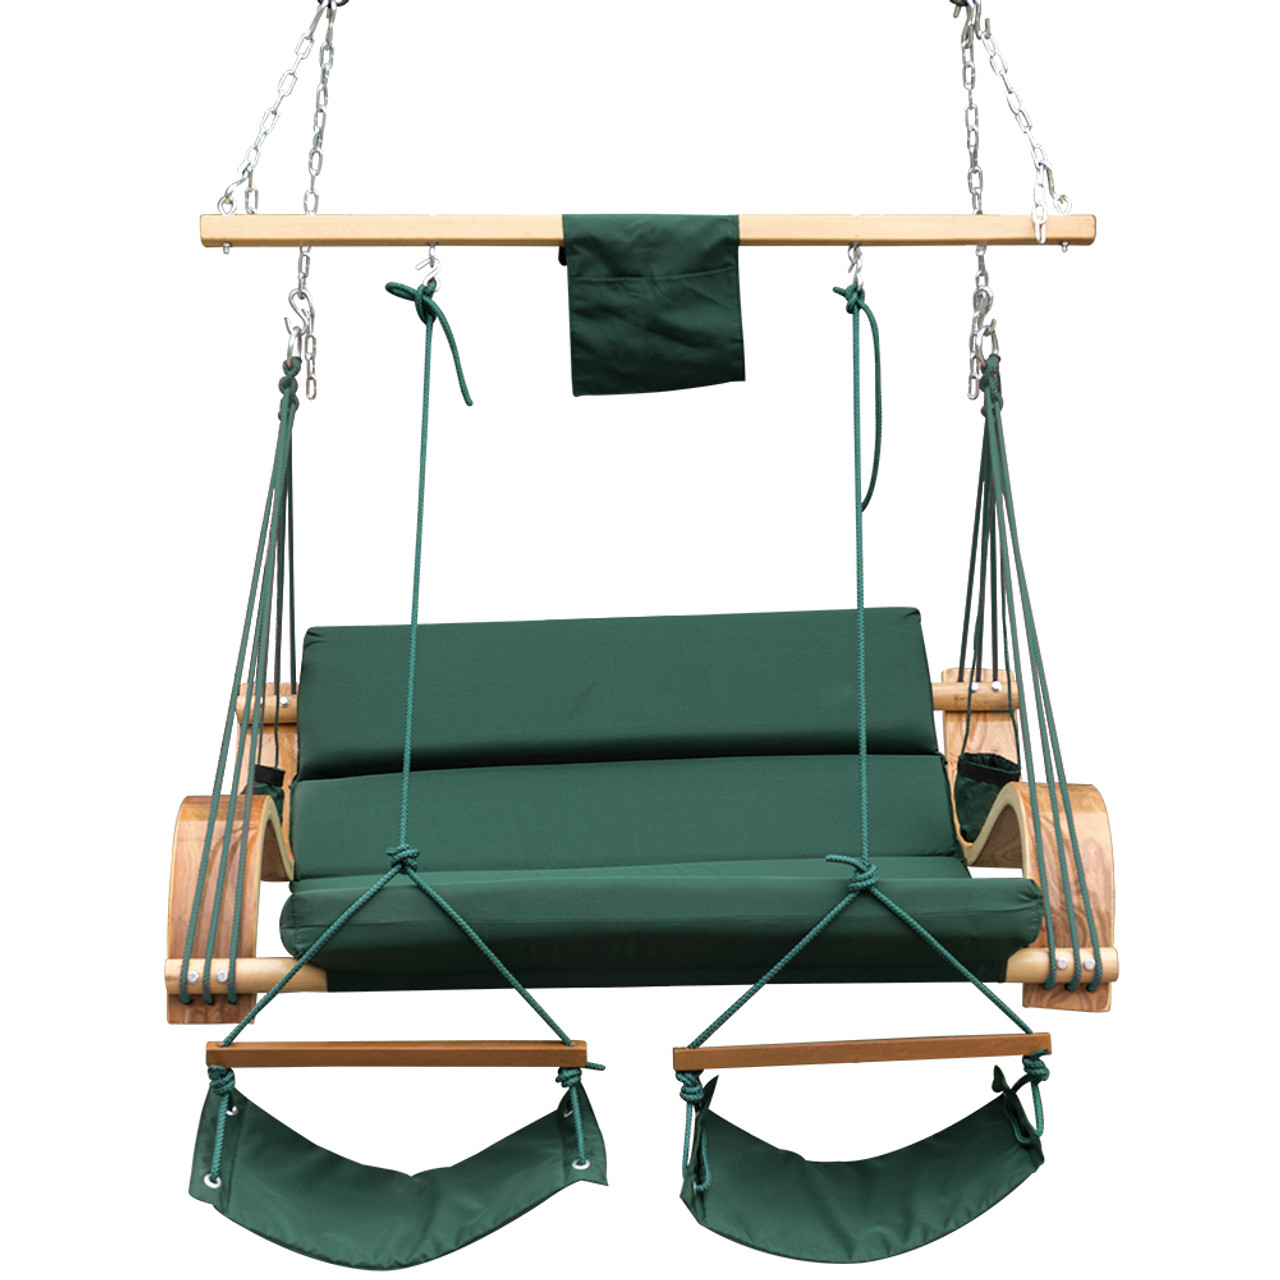 Lazy Daze Hammocks Deluxe Oversized Double Hanging Rope Chair Cotton Padded  Swing Chair Wood Arc Hammock ...